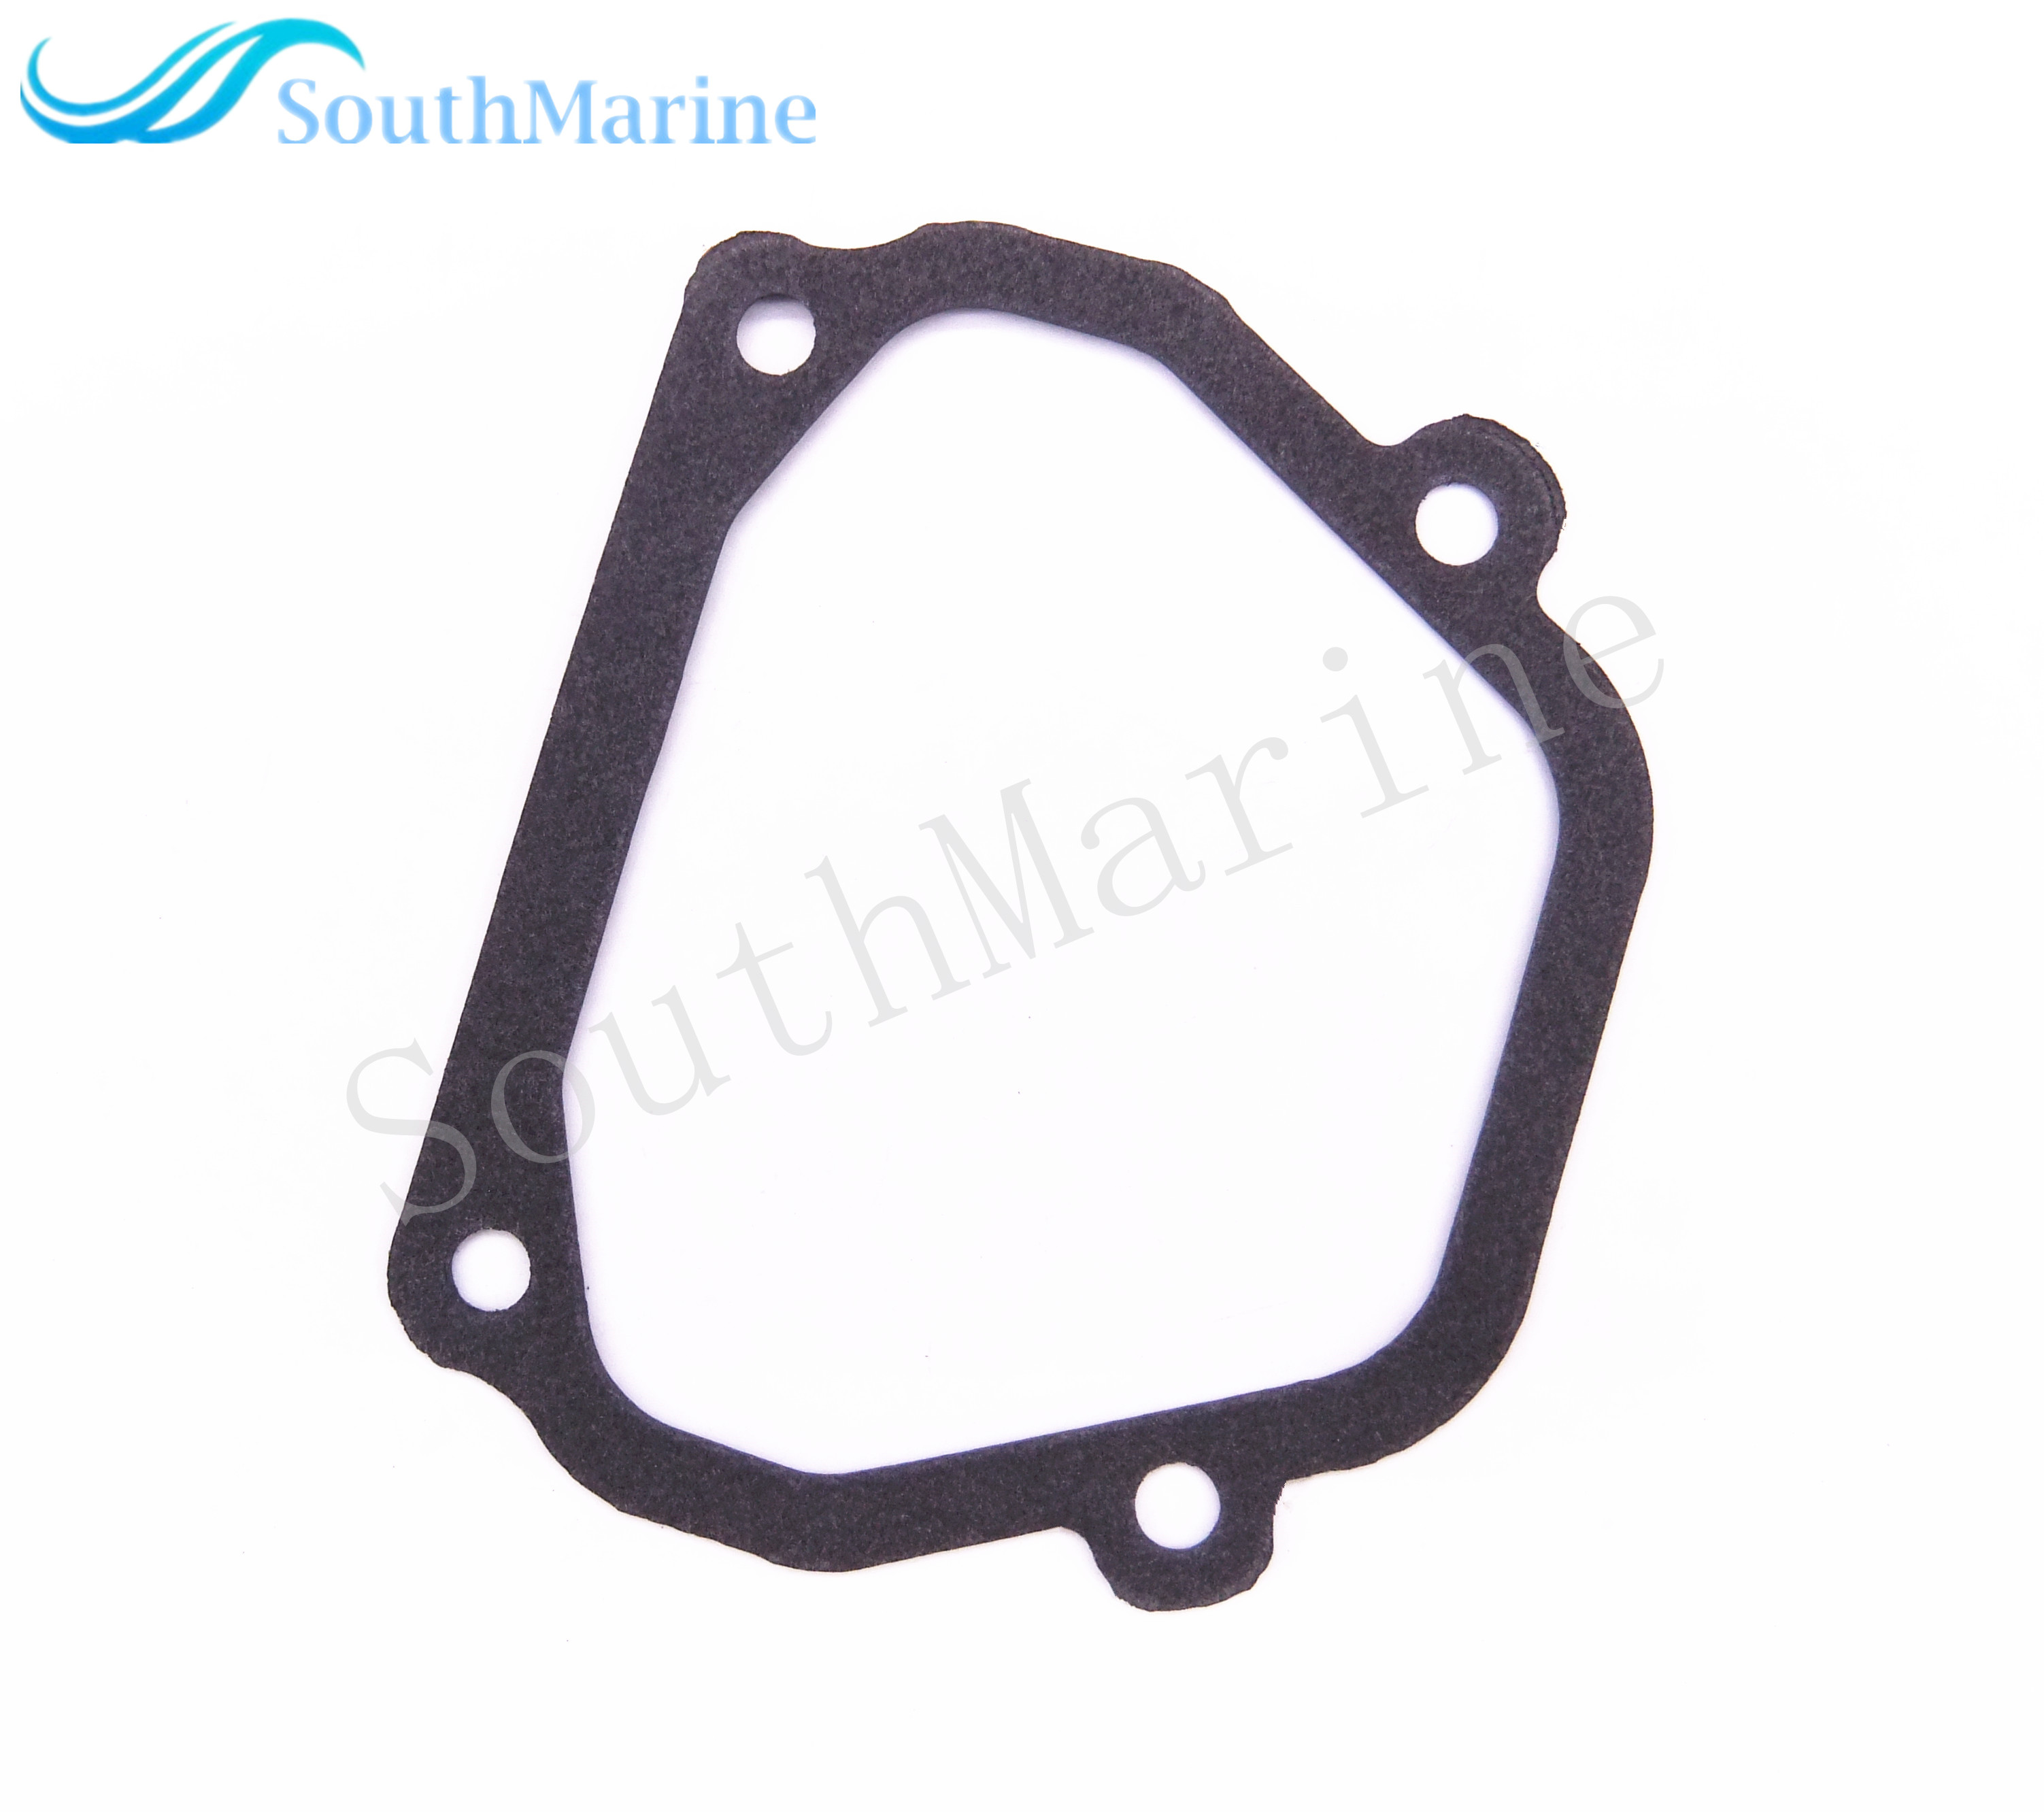 Boat Motor F4-04000017 Head Cover Gasket For Parsun HDX 4-Stroke F4 F5 Outboard Engine Free Shipping